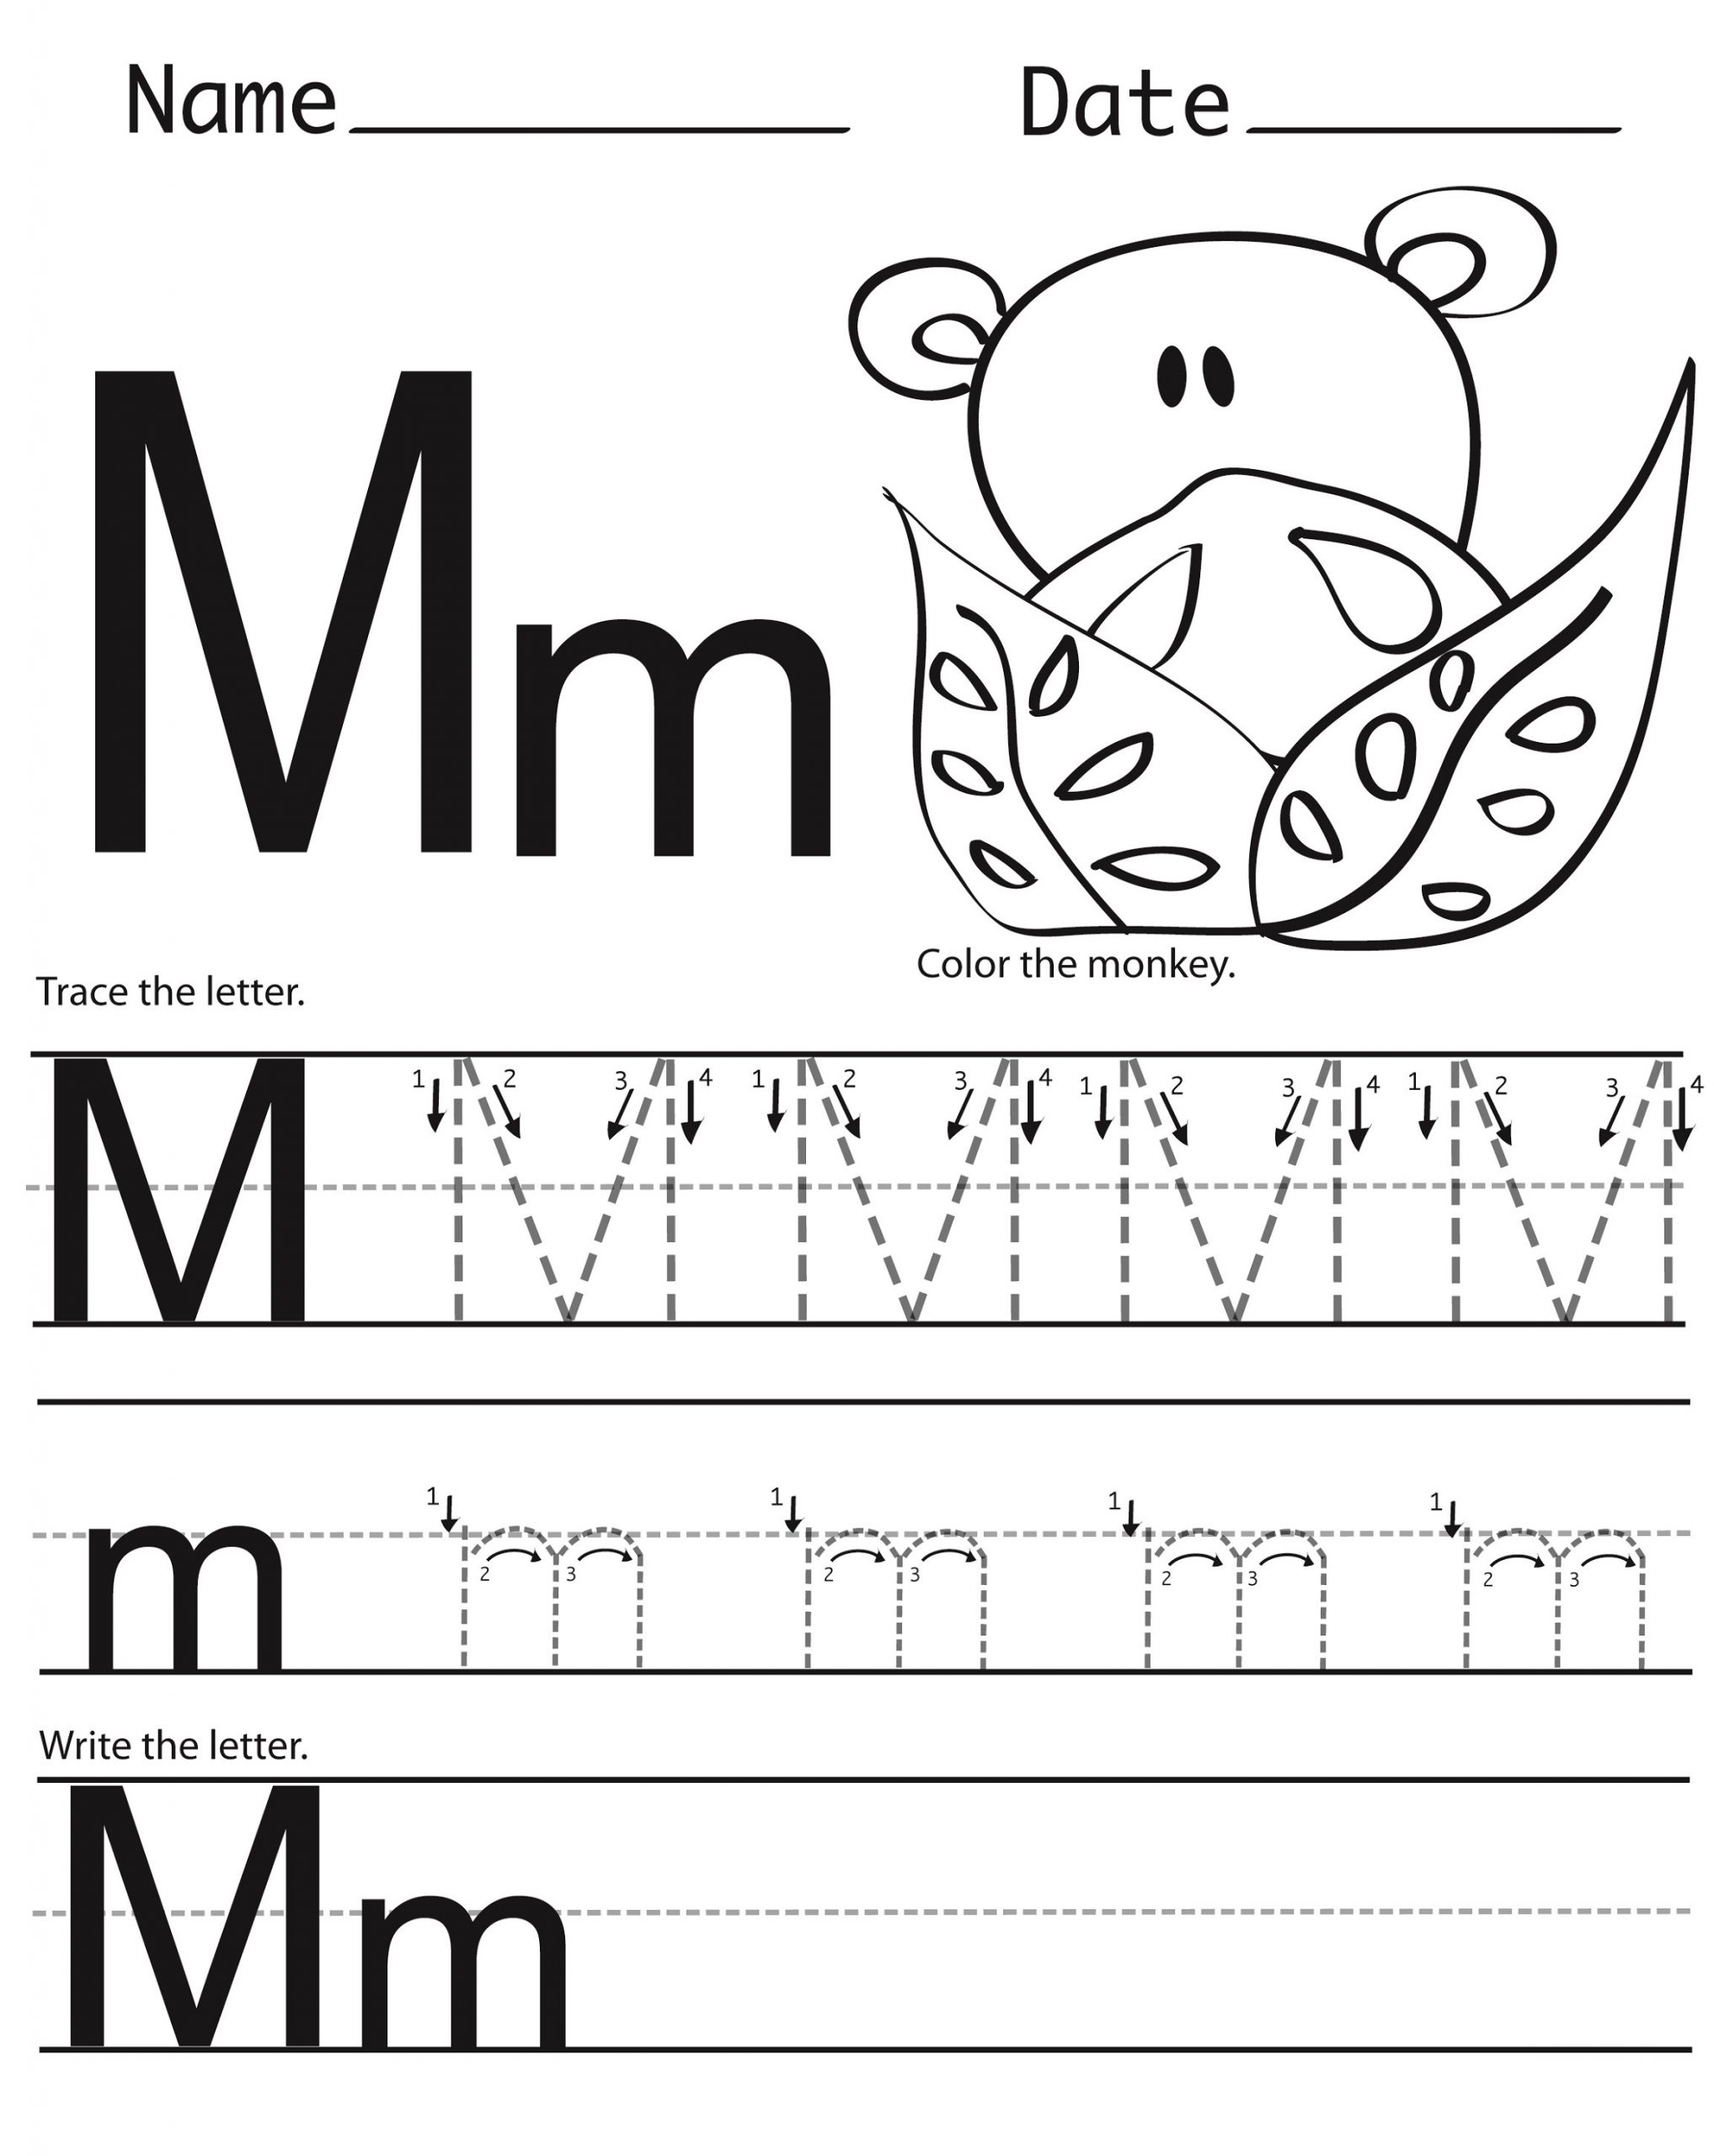 Letter M Worksheets for Preschoolers Letter M Worksheets